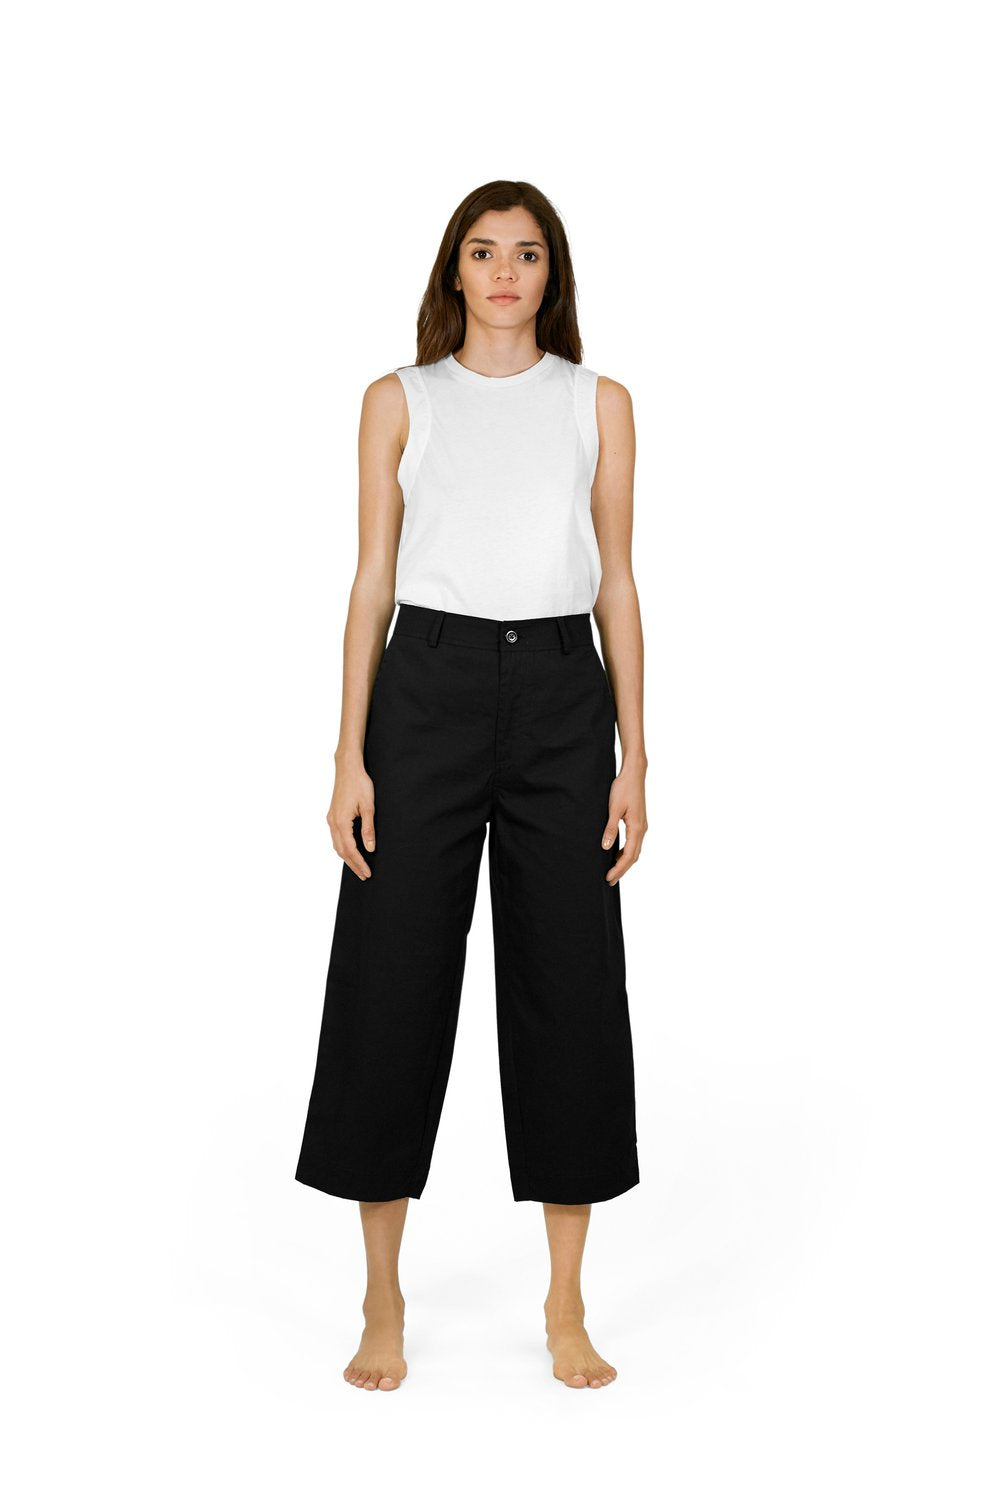 Buy Sanbasics Tailored Pant | Buy Sanbasics Fashion Online